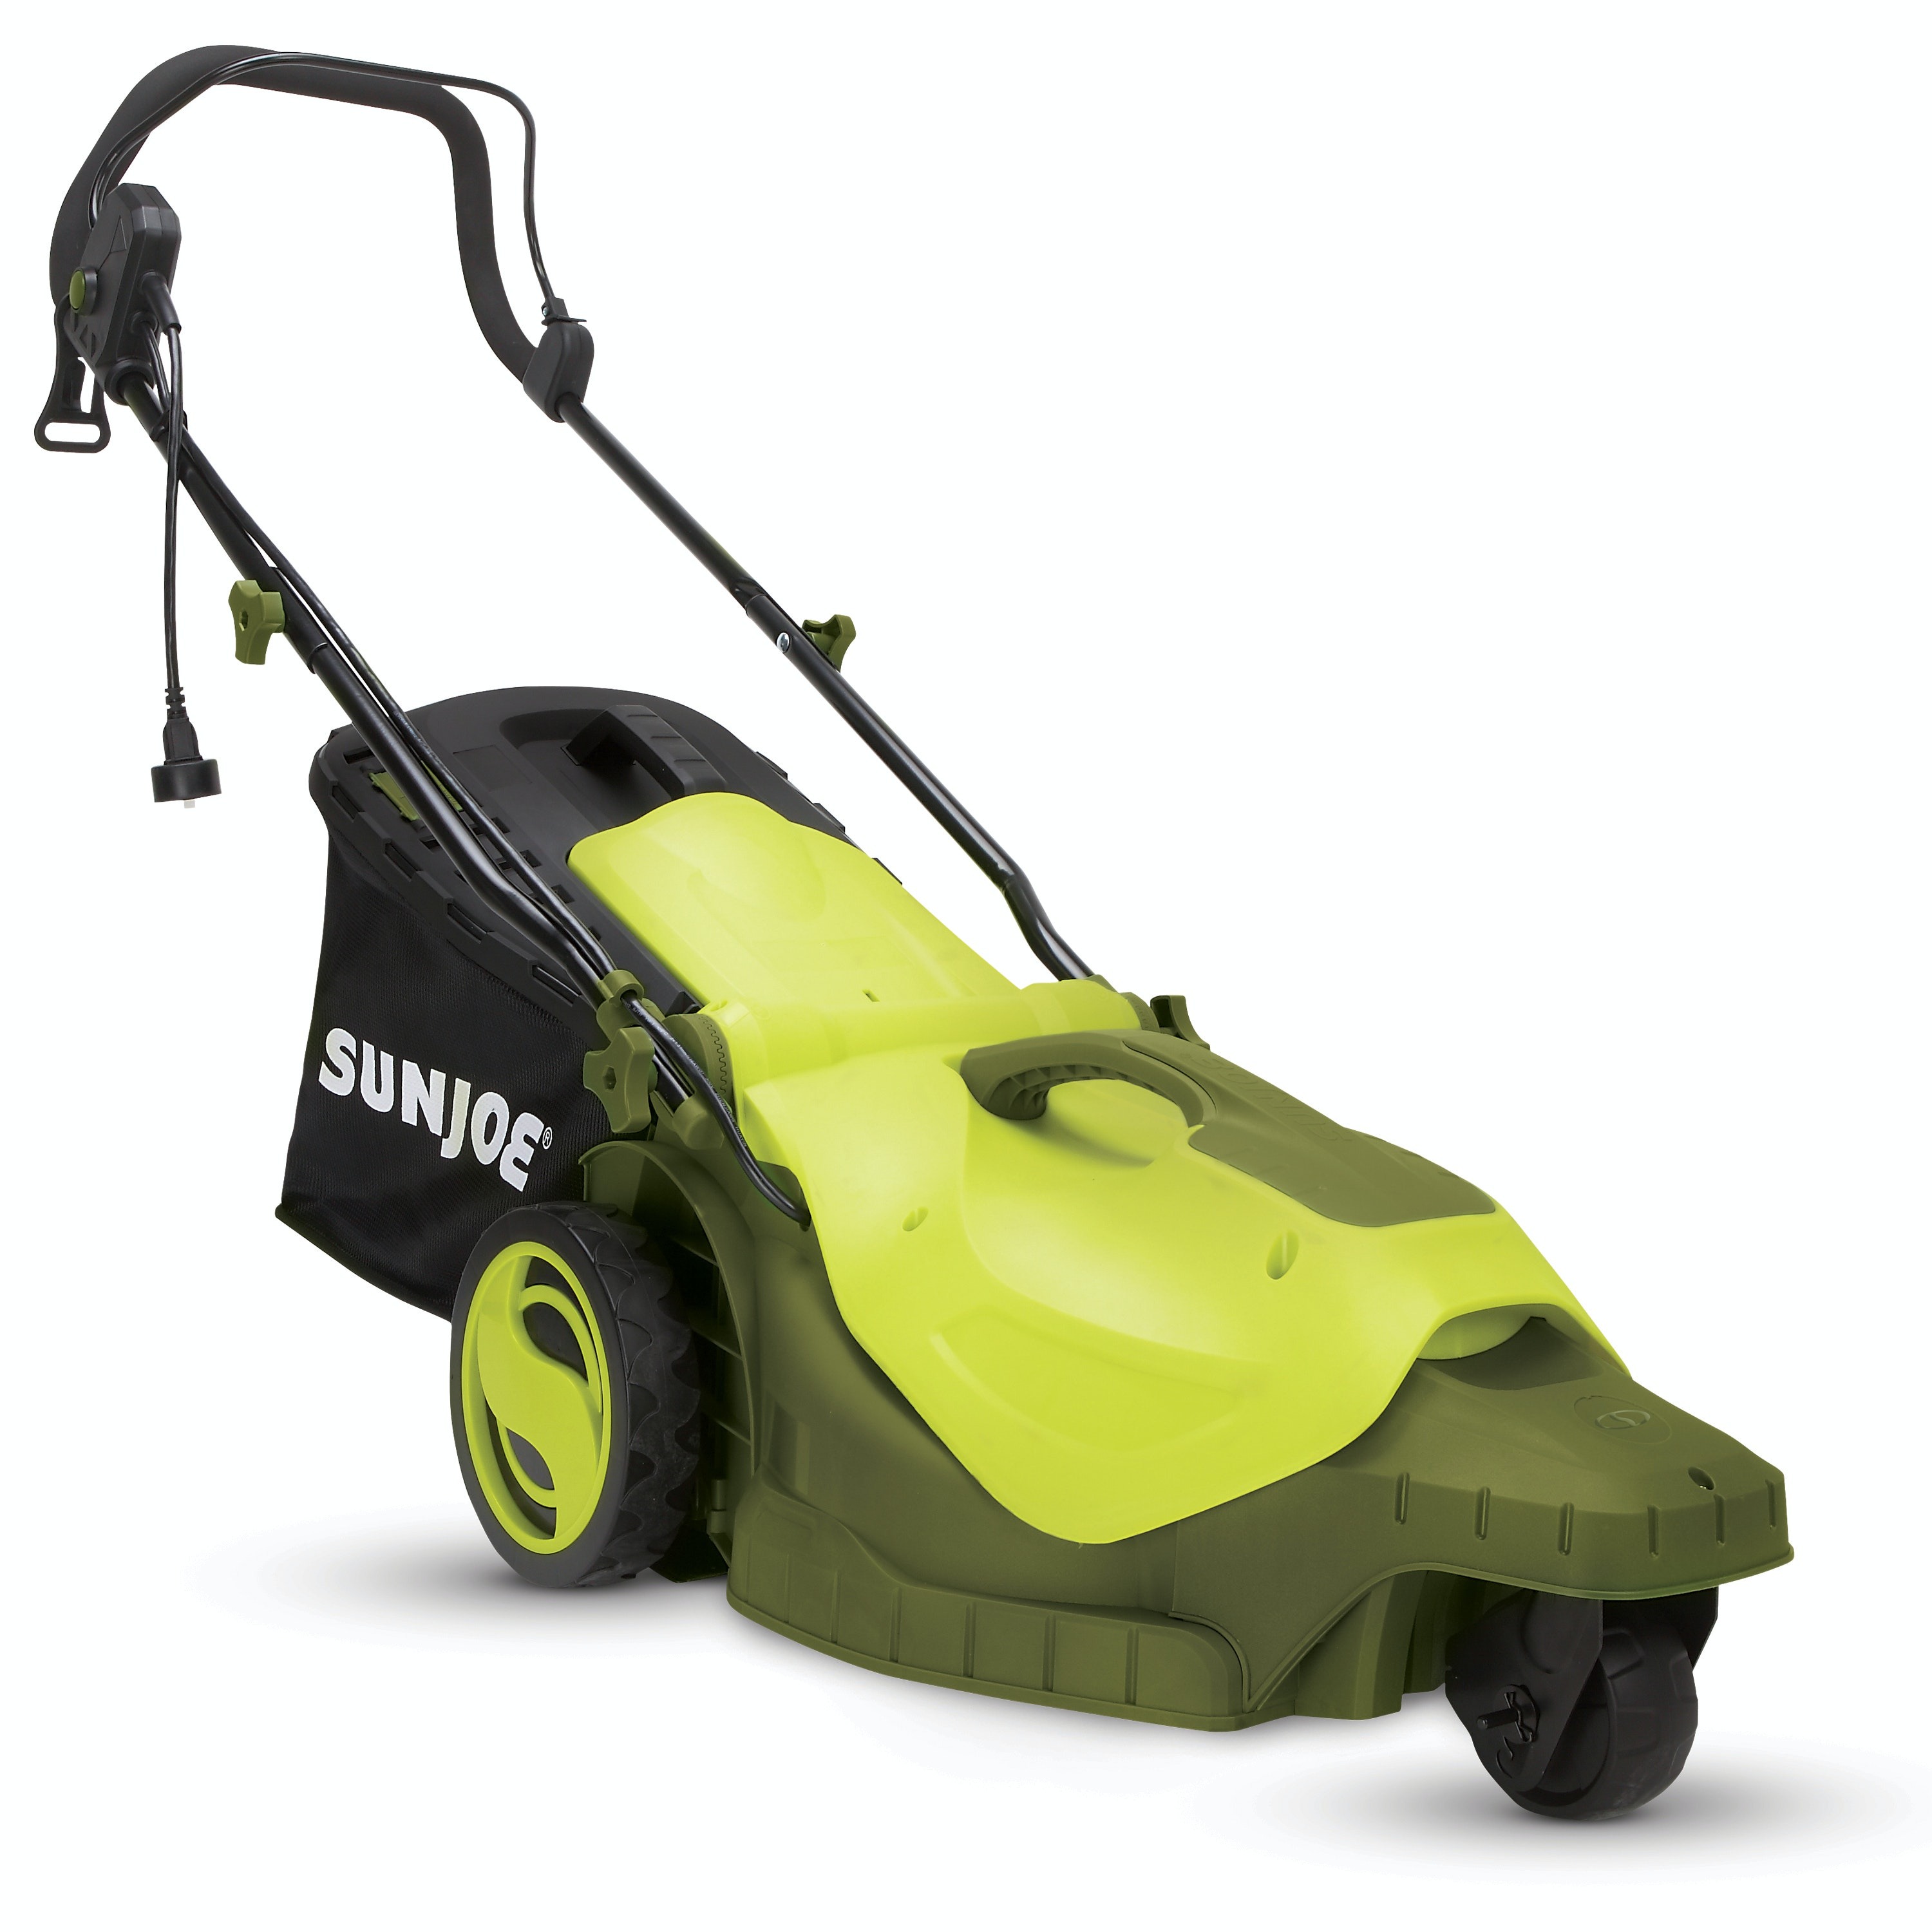 Sisyphus On affordable lawn mower The Lawn Mower